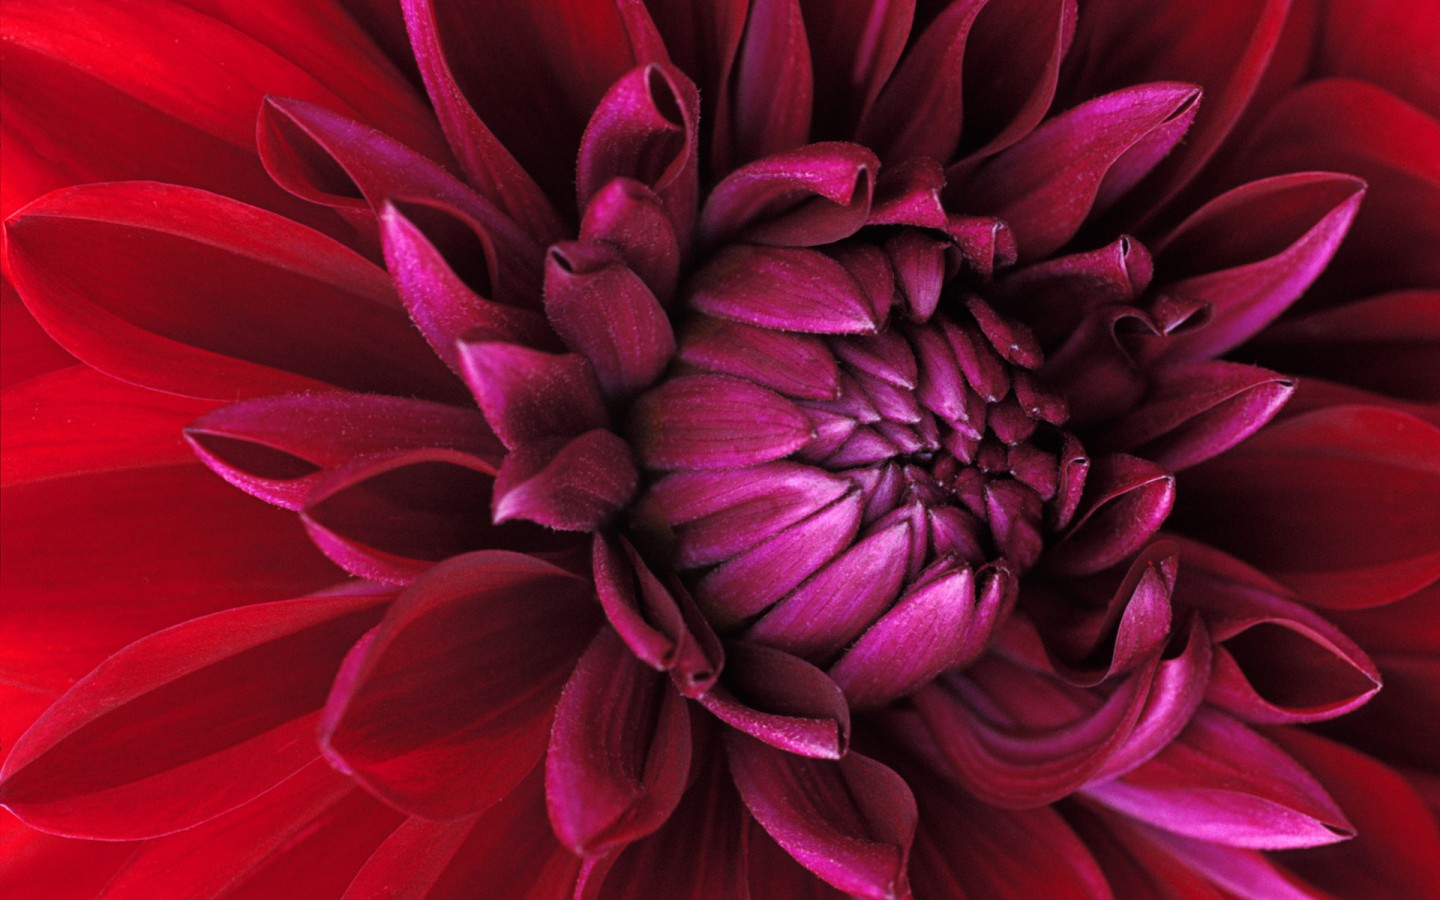 Wallpapers For Windows 7 Cute Windows 7 Flower Wallpapers Hd Wallpapers Id 5735